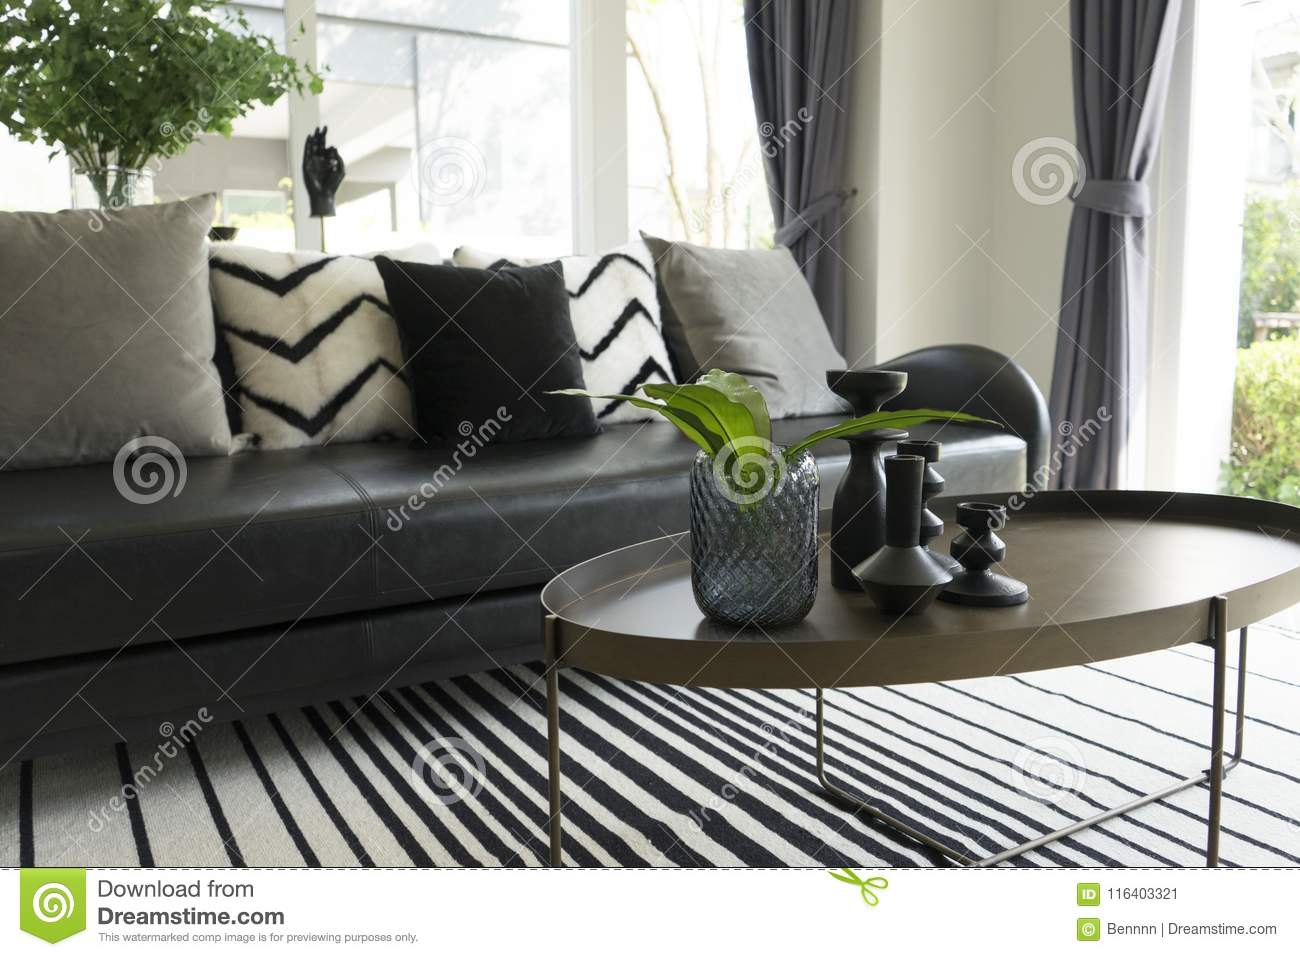 Modern Vase And Green Leaf On Center Table With Black And White Pillows On Sofa Stock Image Image Of Design Interior 116403321